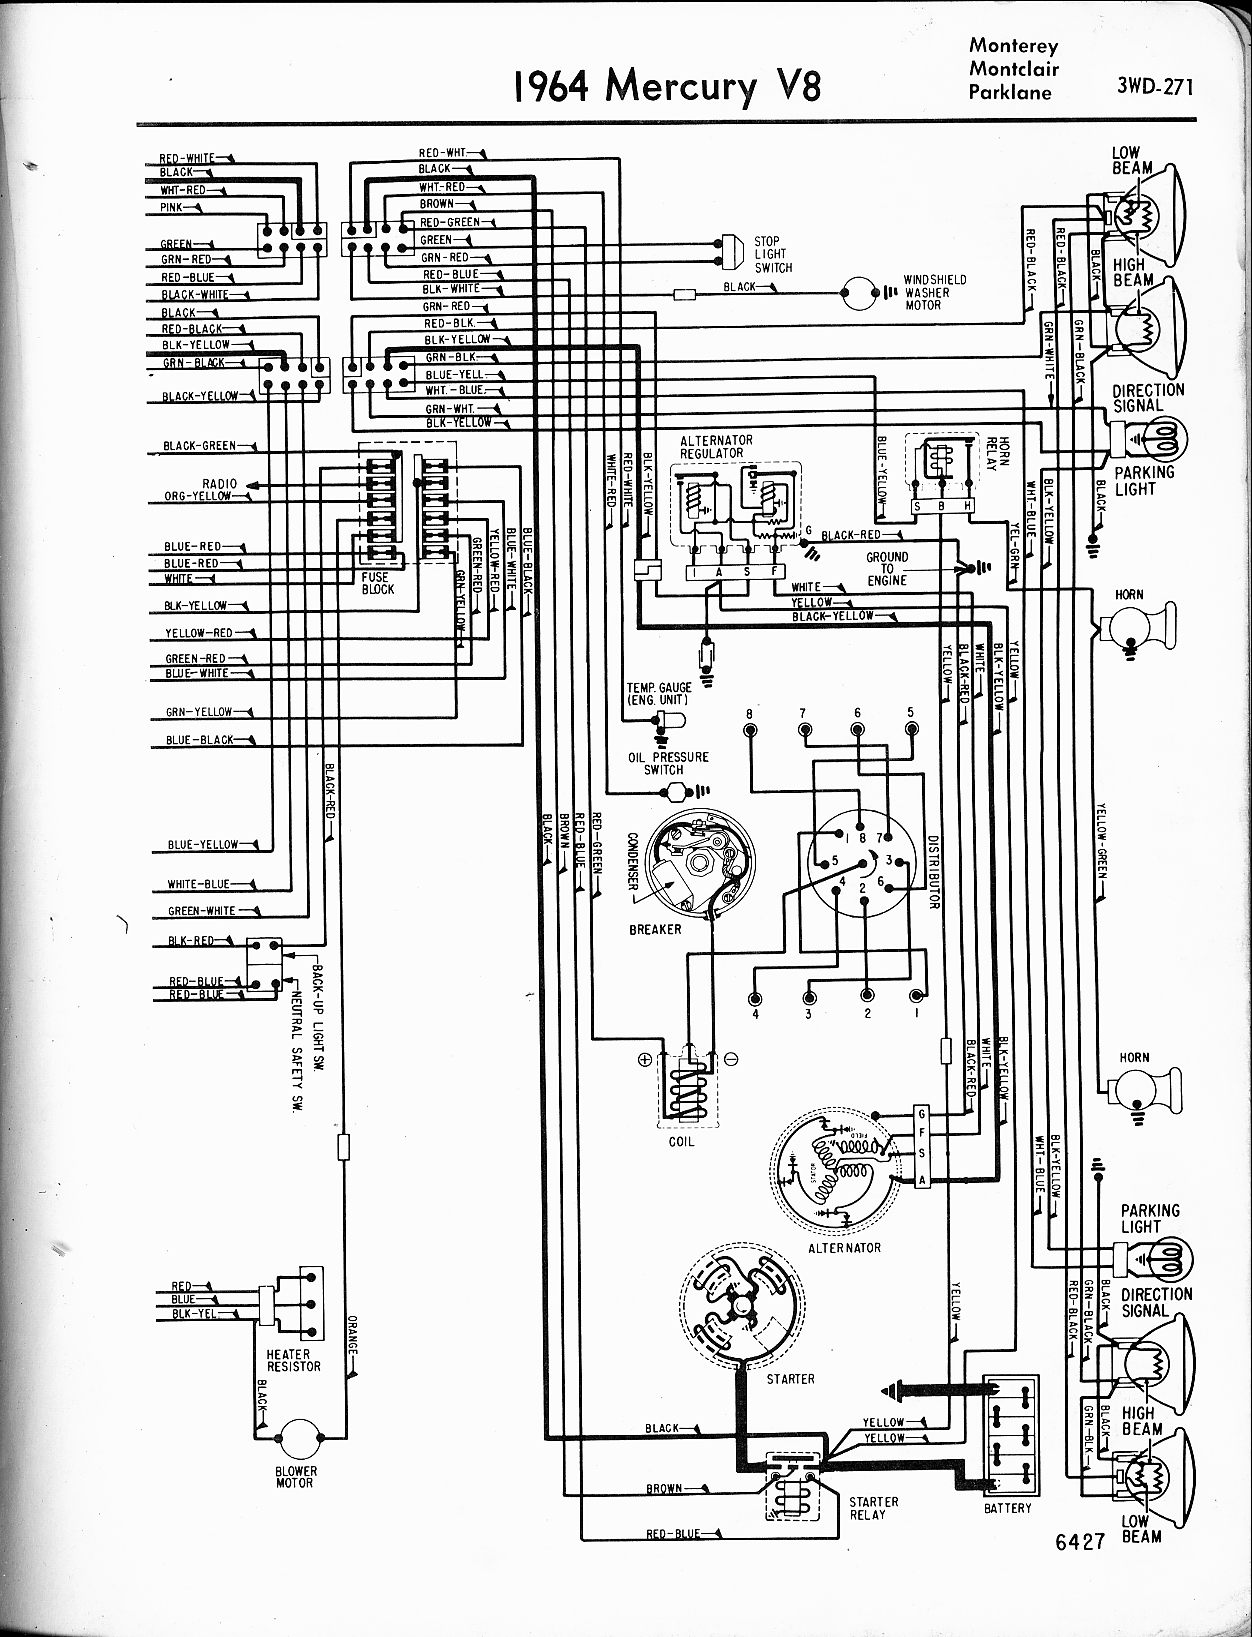 Mercury Wiring Diagrams | Wiring Diagram 2019 on johnson 150 outboard motor diagram, outboard engine wiring diagram, mariner outboard wiring diagram, johnson pump wiring diagram, johnson 15 hp carburetor diagram, johnson outboard engine diagram, 25 hp johnson outboard diagram, johnson tachometer wiring diagram, johnson outboard repair manual, force outboard wiring diagram, 115 johnson outboard diagram, johnson outboard parts, johnson snowmobile wiring diagram, johnson 75 hp wiring diagram, johnson outboard engine schematics, ford motor wiring diagram, johnson outboard controls diagram, johnson ignition wiring diagram, evinrude outboard wiring diagram, johnson outboard wiring colors,